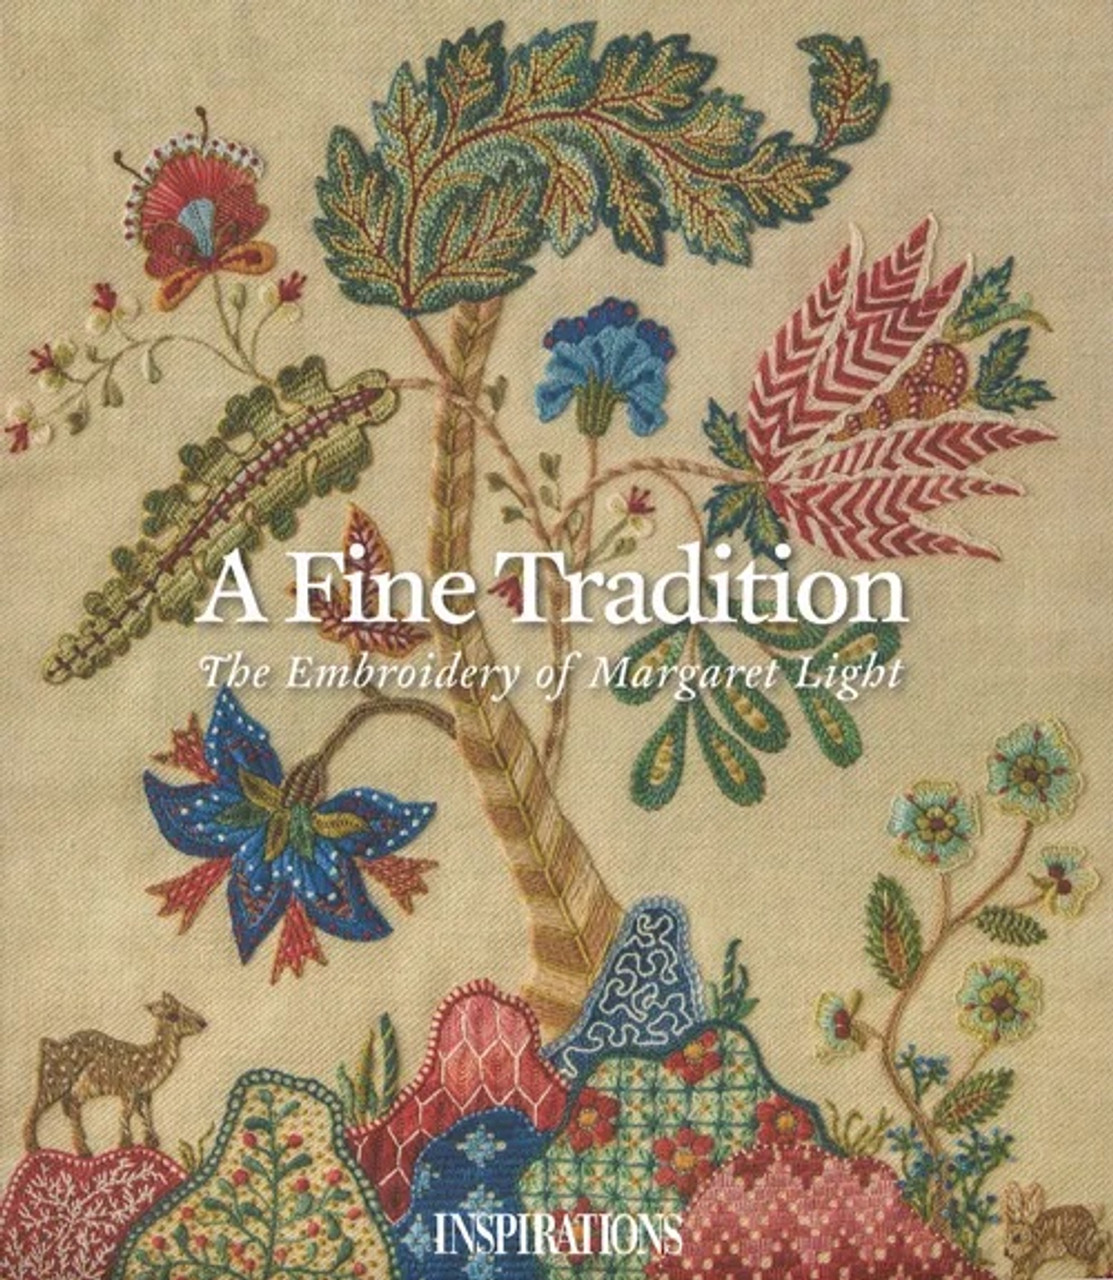 A Fine Tradition, The Embroidery of Margaret Light